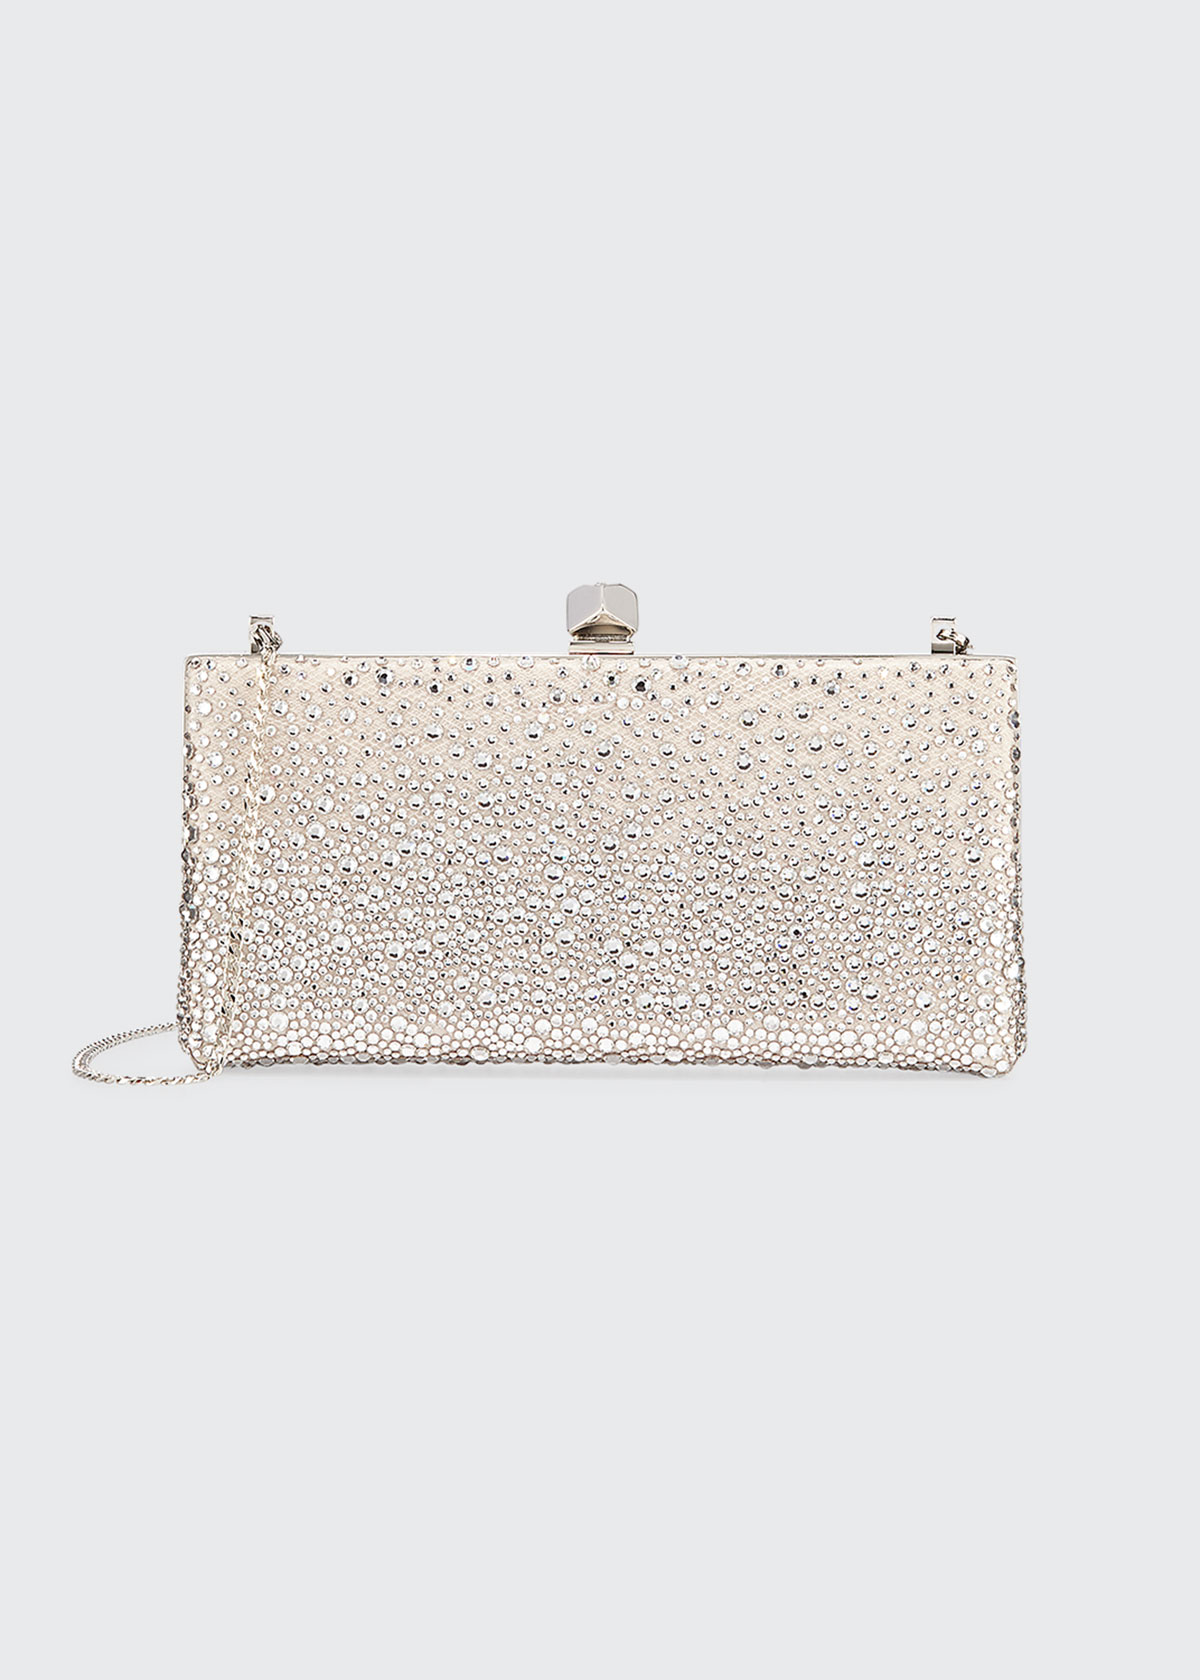 Jimmy Choo Celeste Sprinkled Crystal Mesh Frame Clutch In Pink